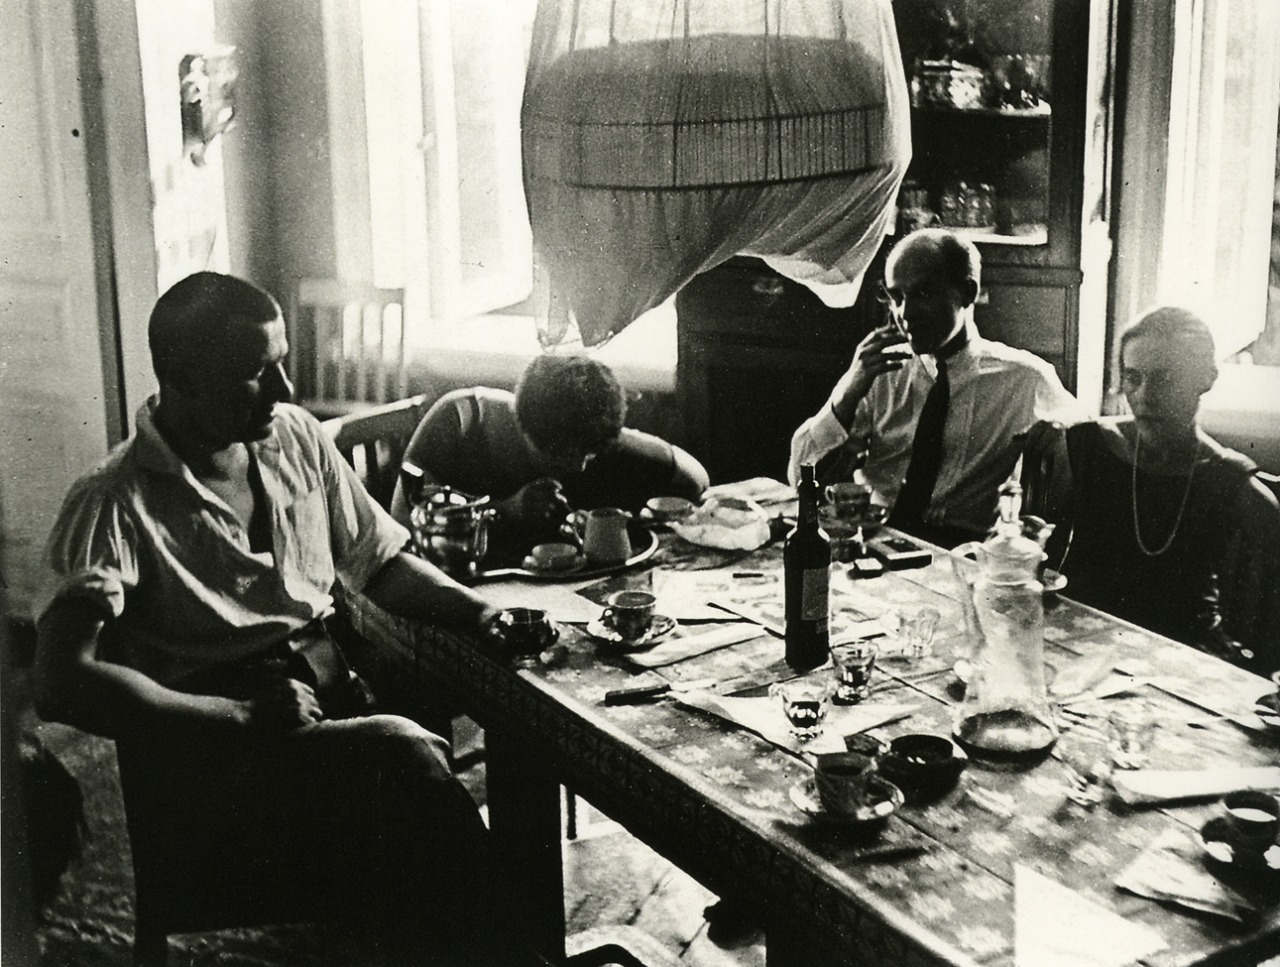 Vladimir Mayakovsky, Varvara Stepanova, art critic Osip Beskin and Lilya Brik in Briks' house on Gendrikov Street; photo by Alexander Rodchenko, 1928.jpg